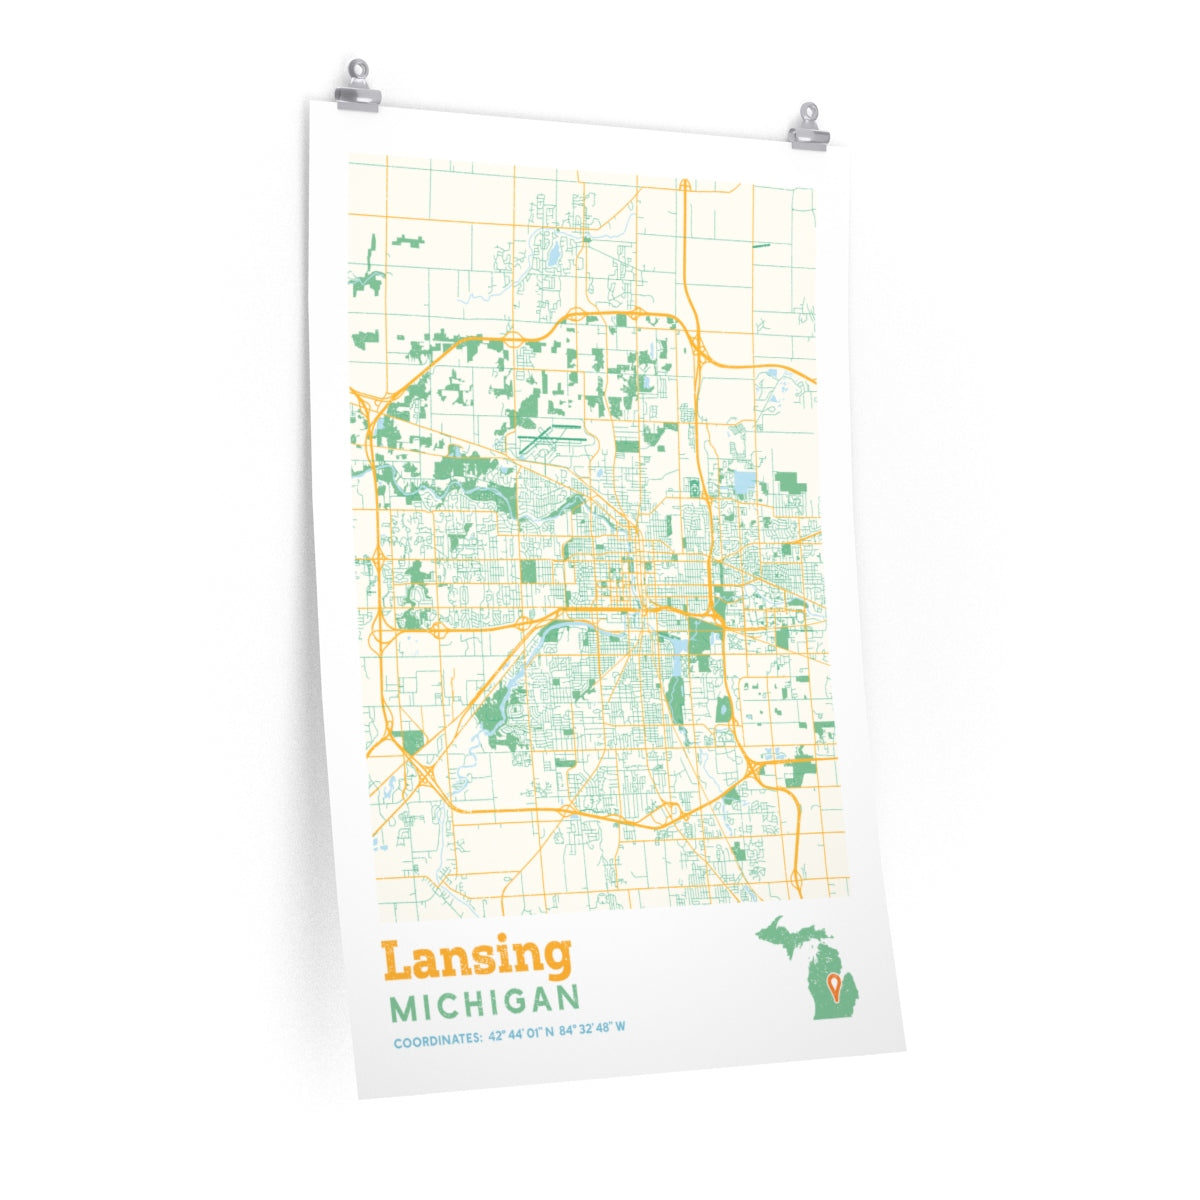 Lansing Michigan City Street Map Poster Allegiant Goods Co